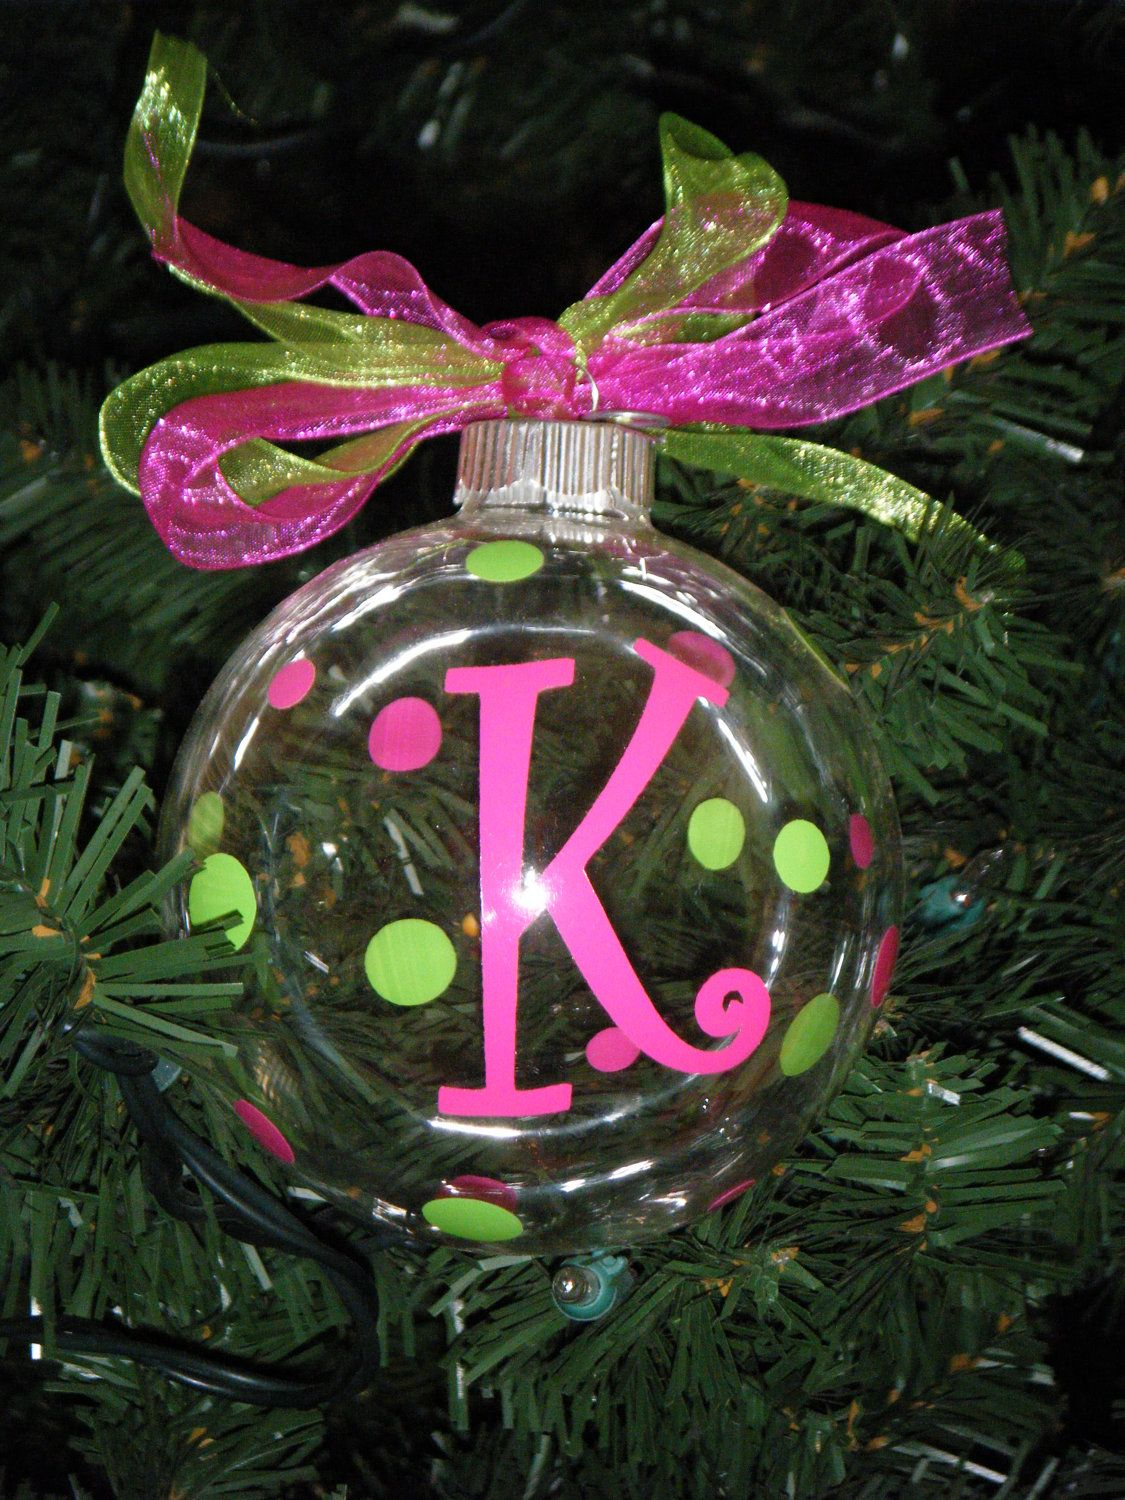 Uncategorized Make Personalized Christmas Ornaments personalized christmas ornaments 8 00 via etsy or make them yourself you can get